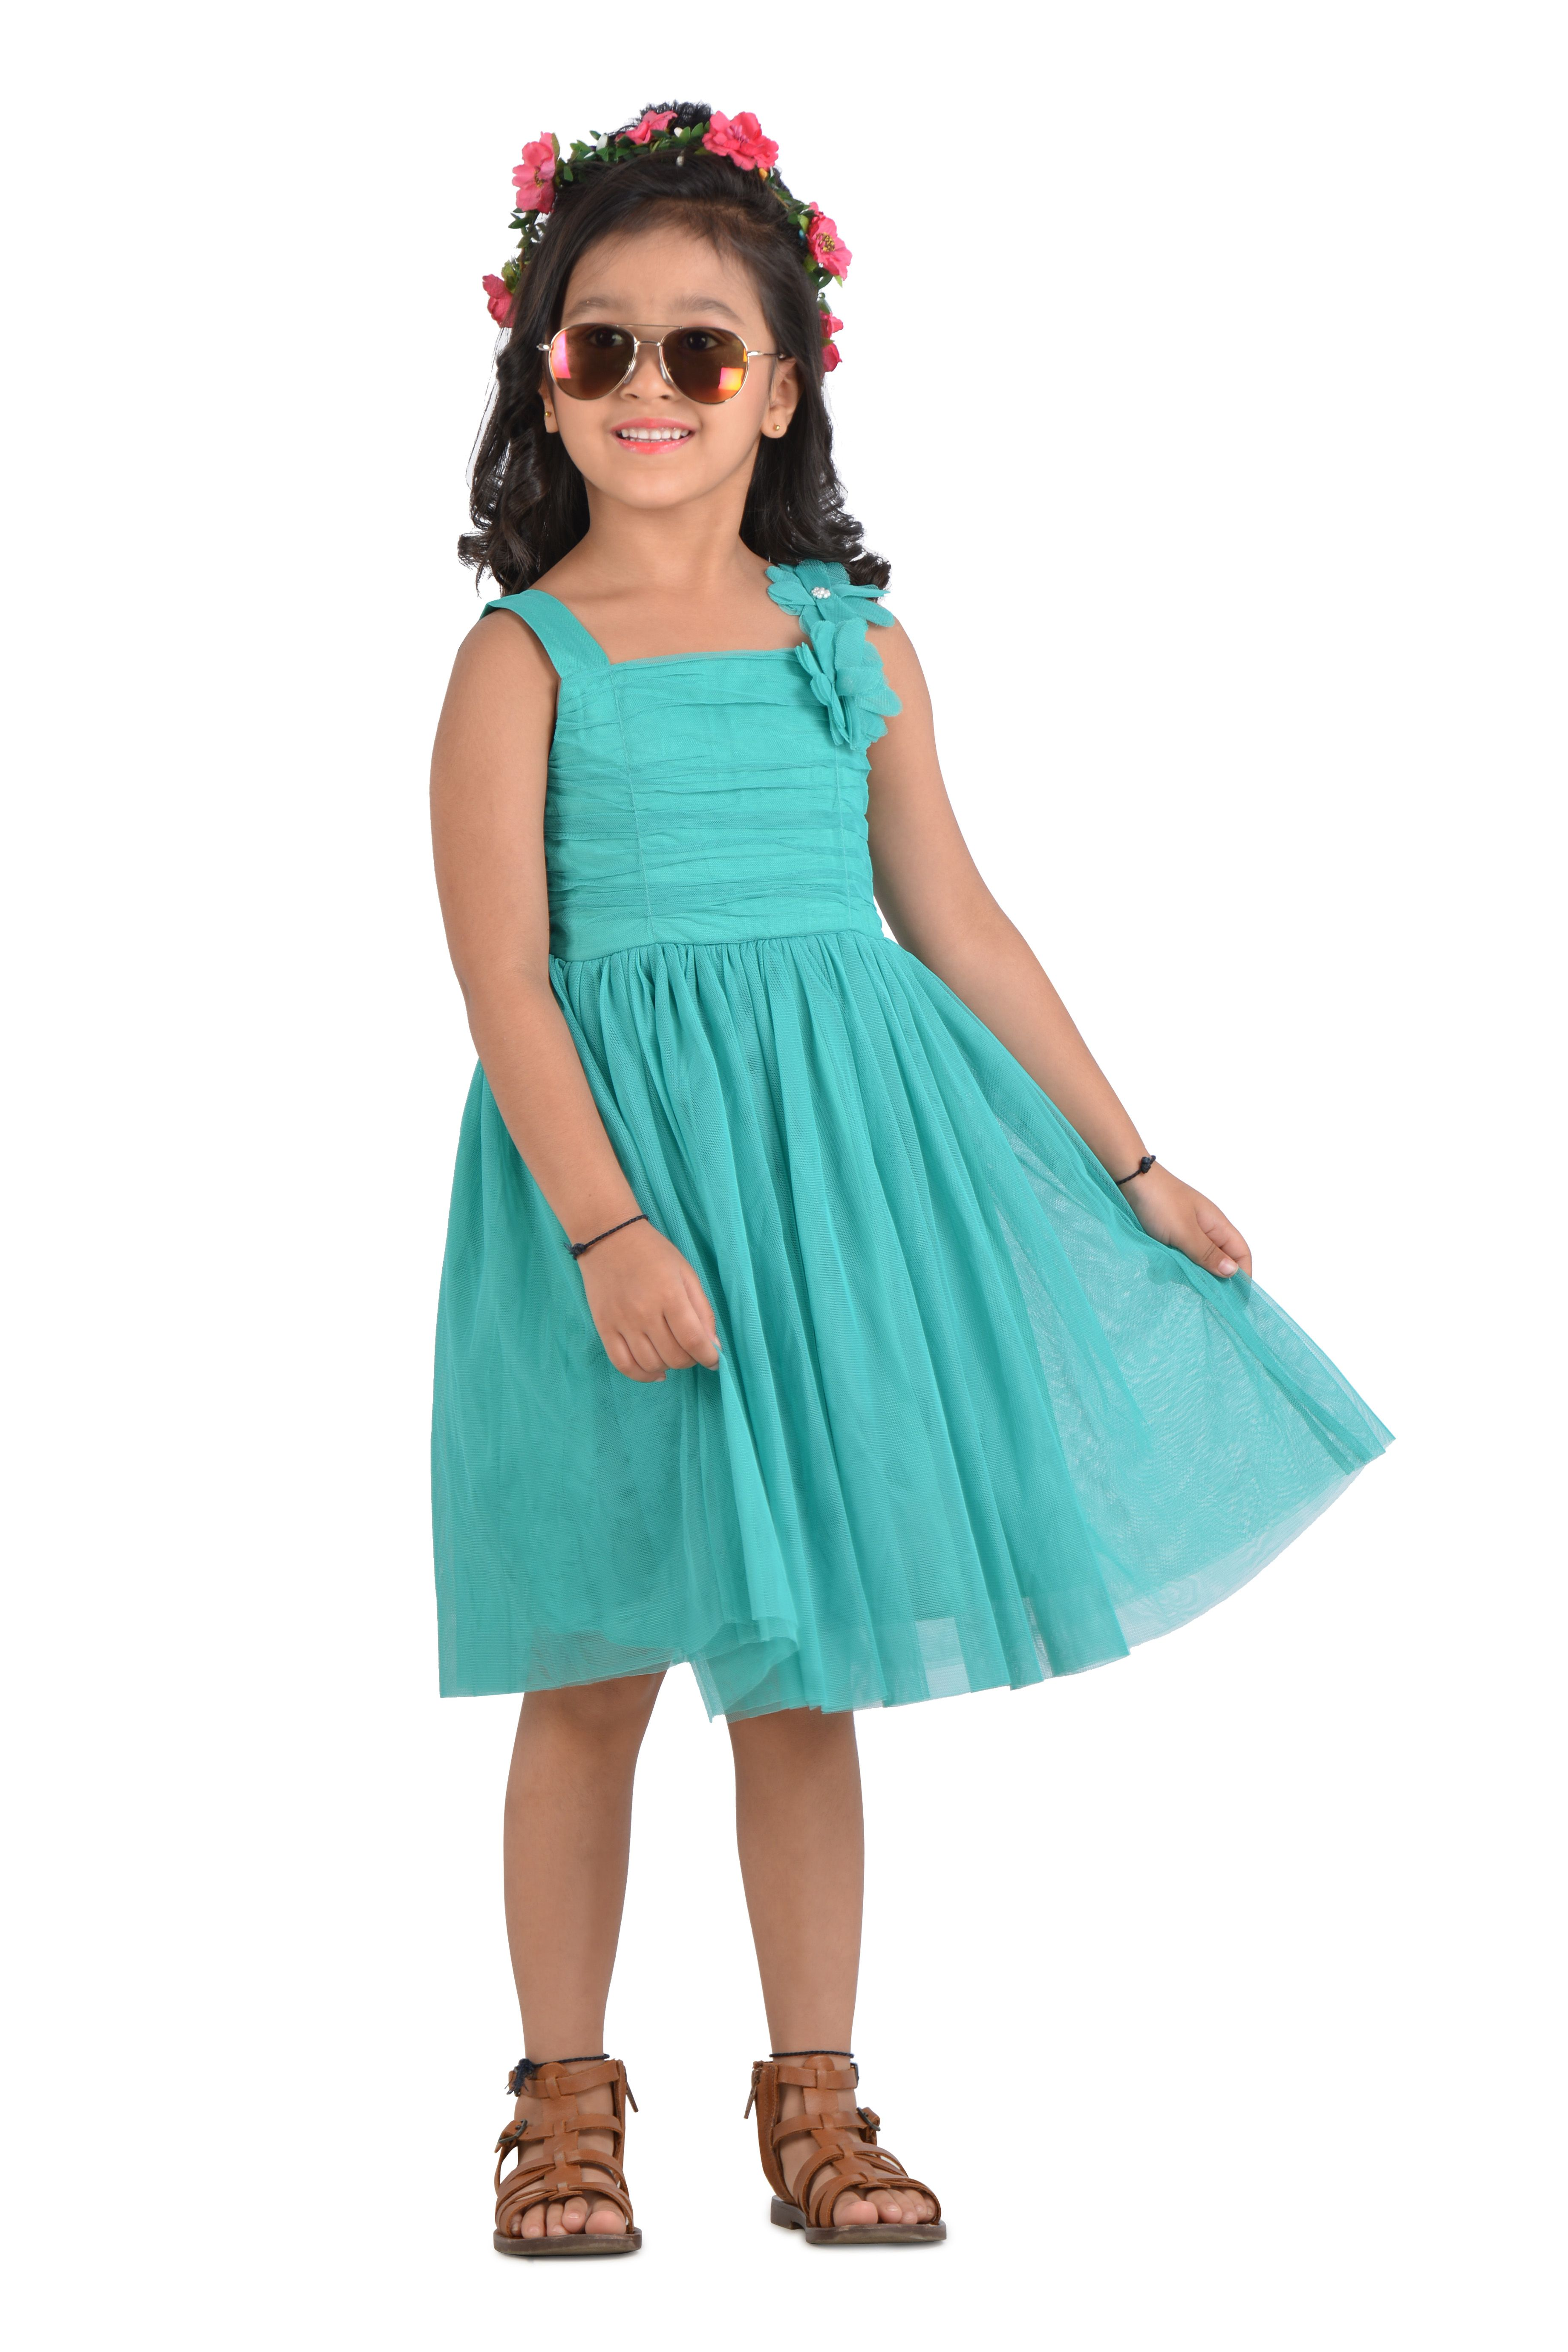 41a99983bd3a Beautiful Sleeveless Party wear Dress for little charming girl. The ...